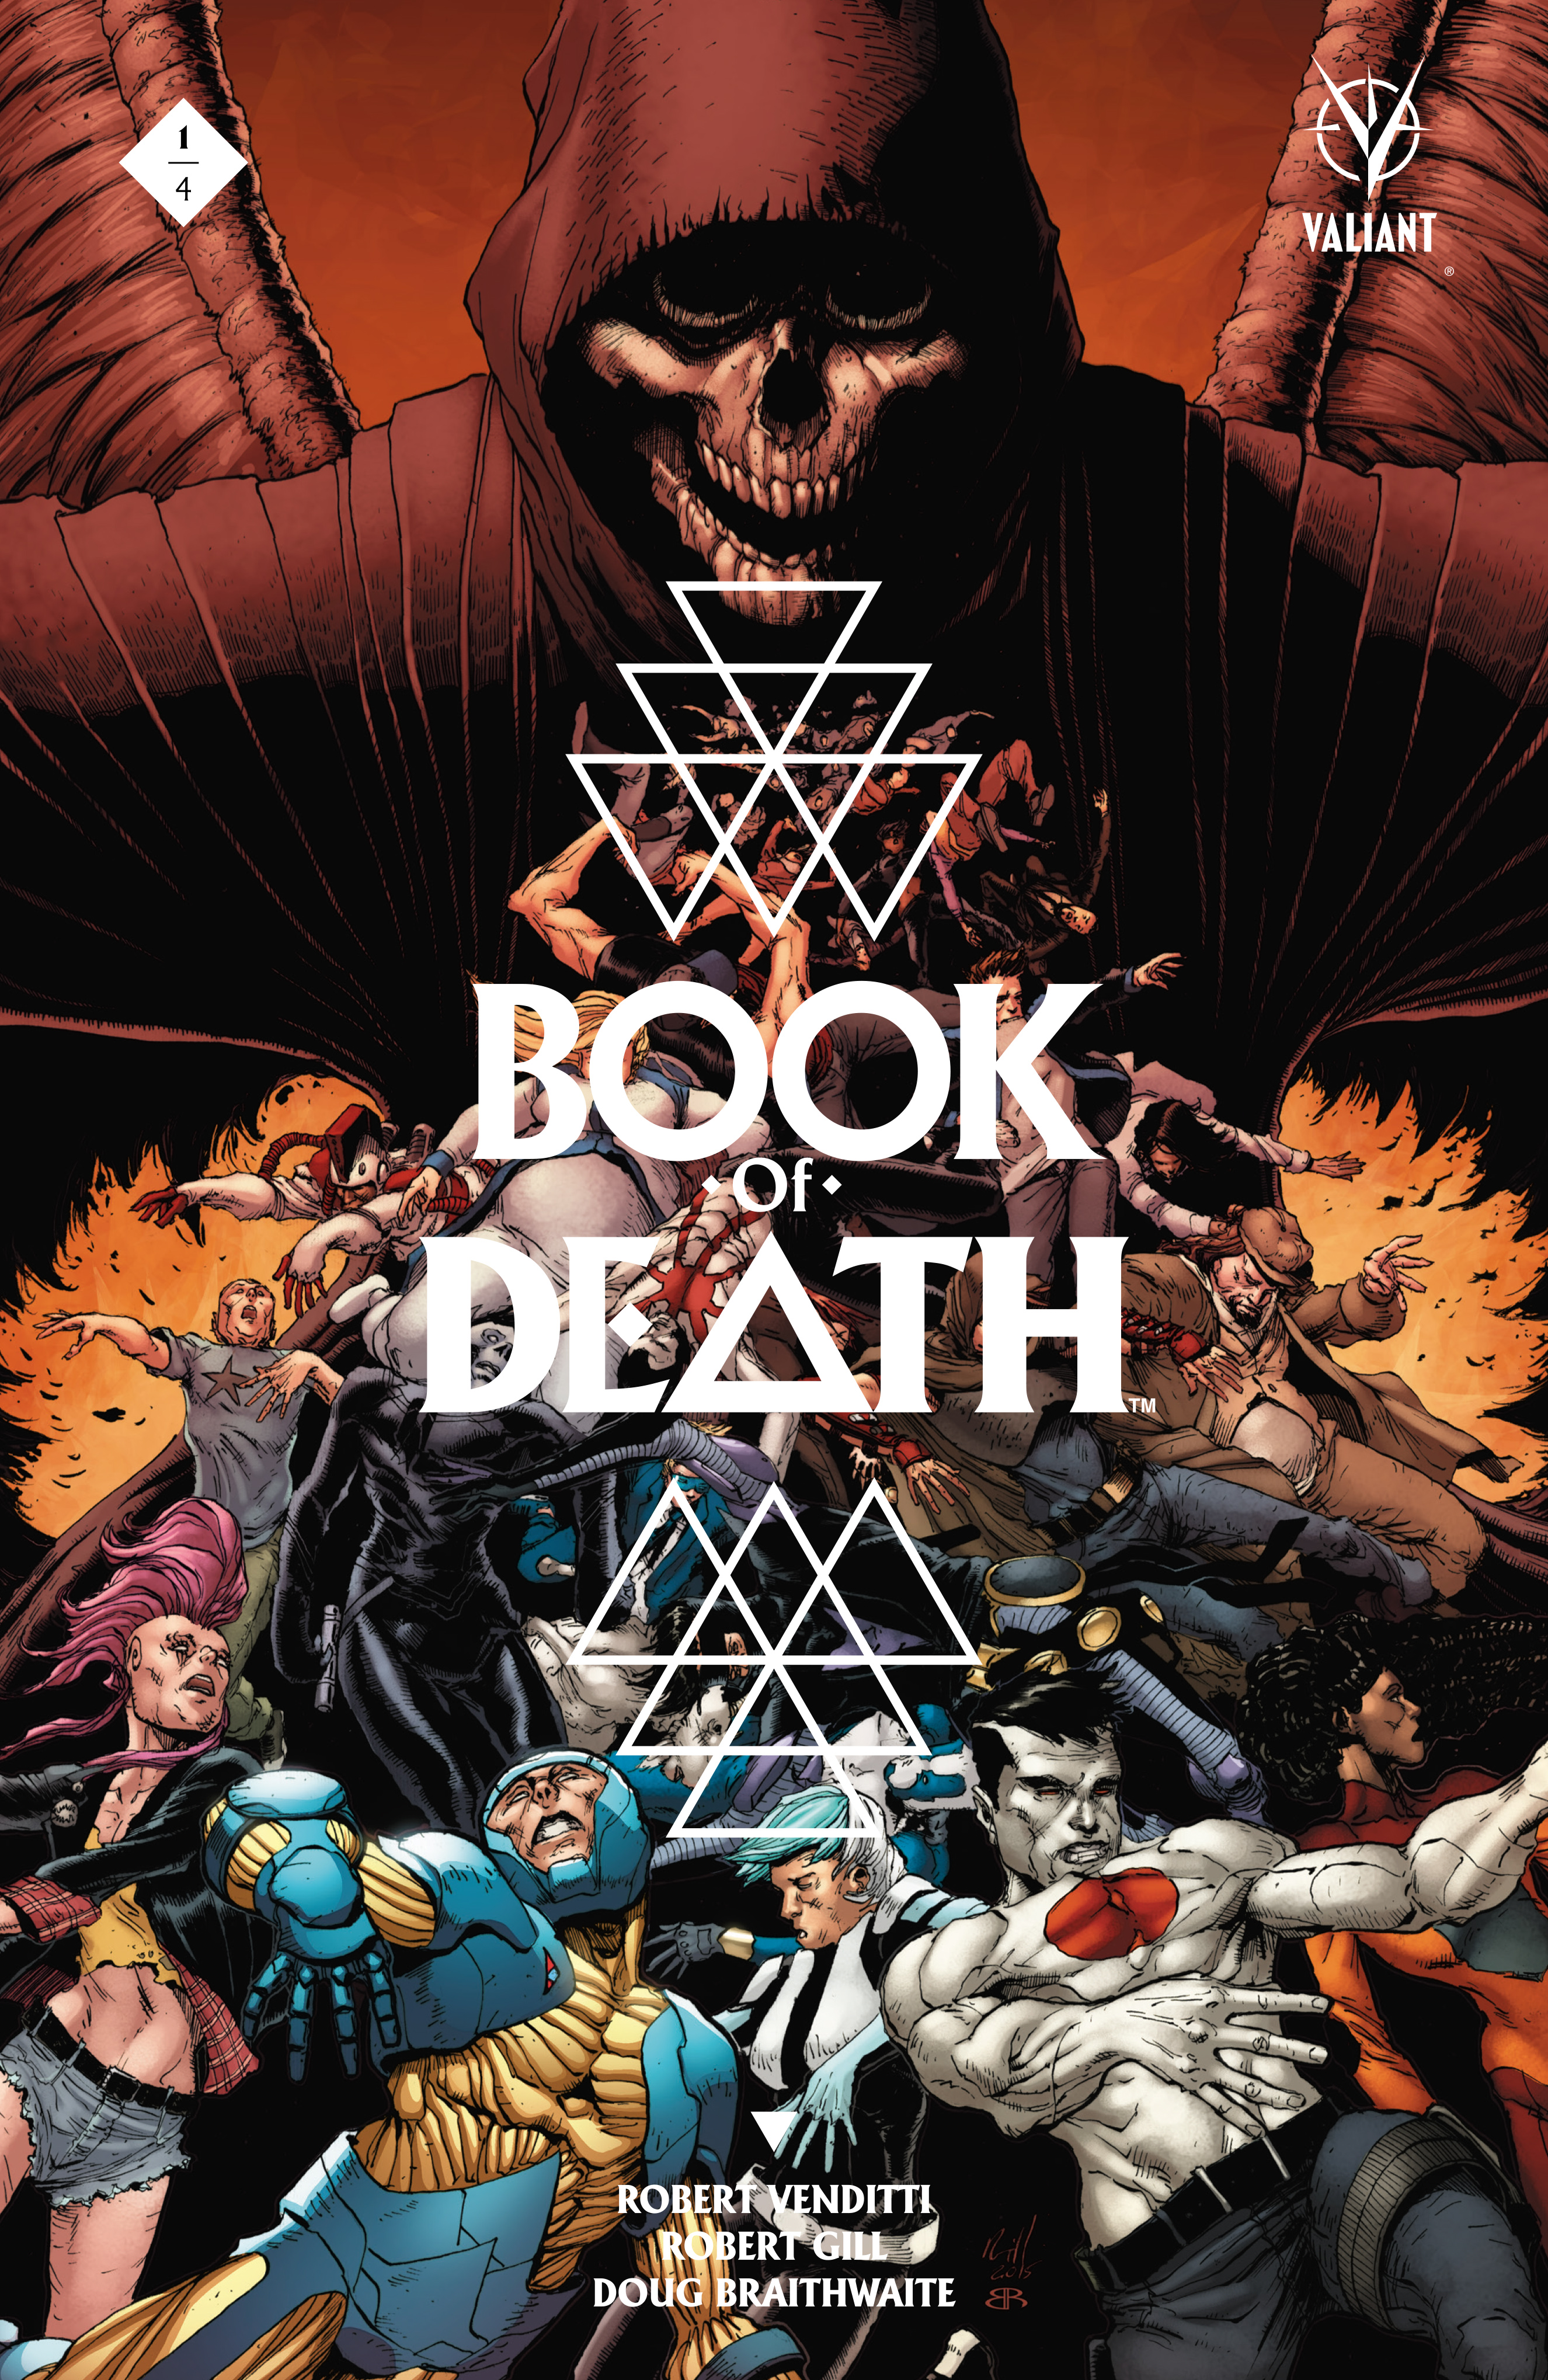 Book of Death Issue 1